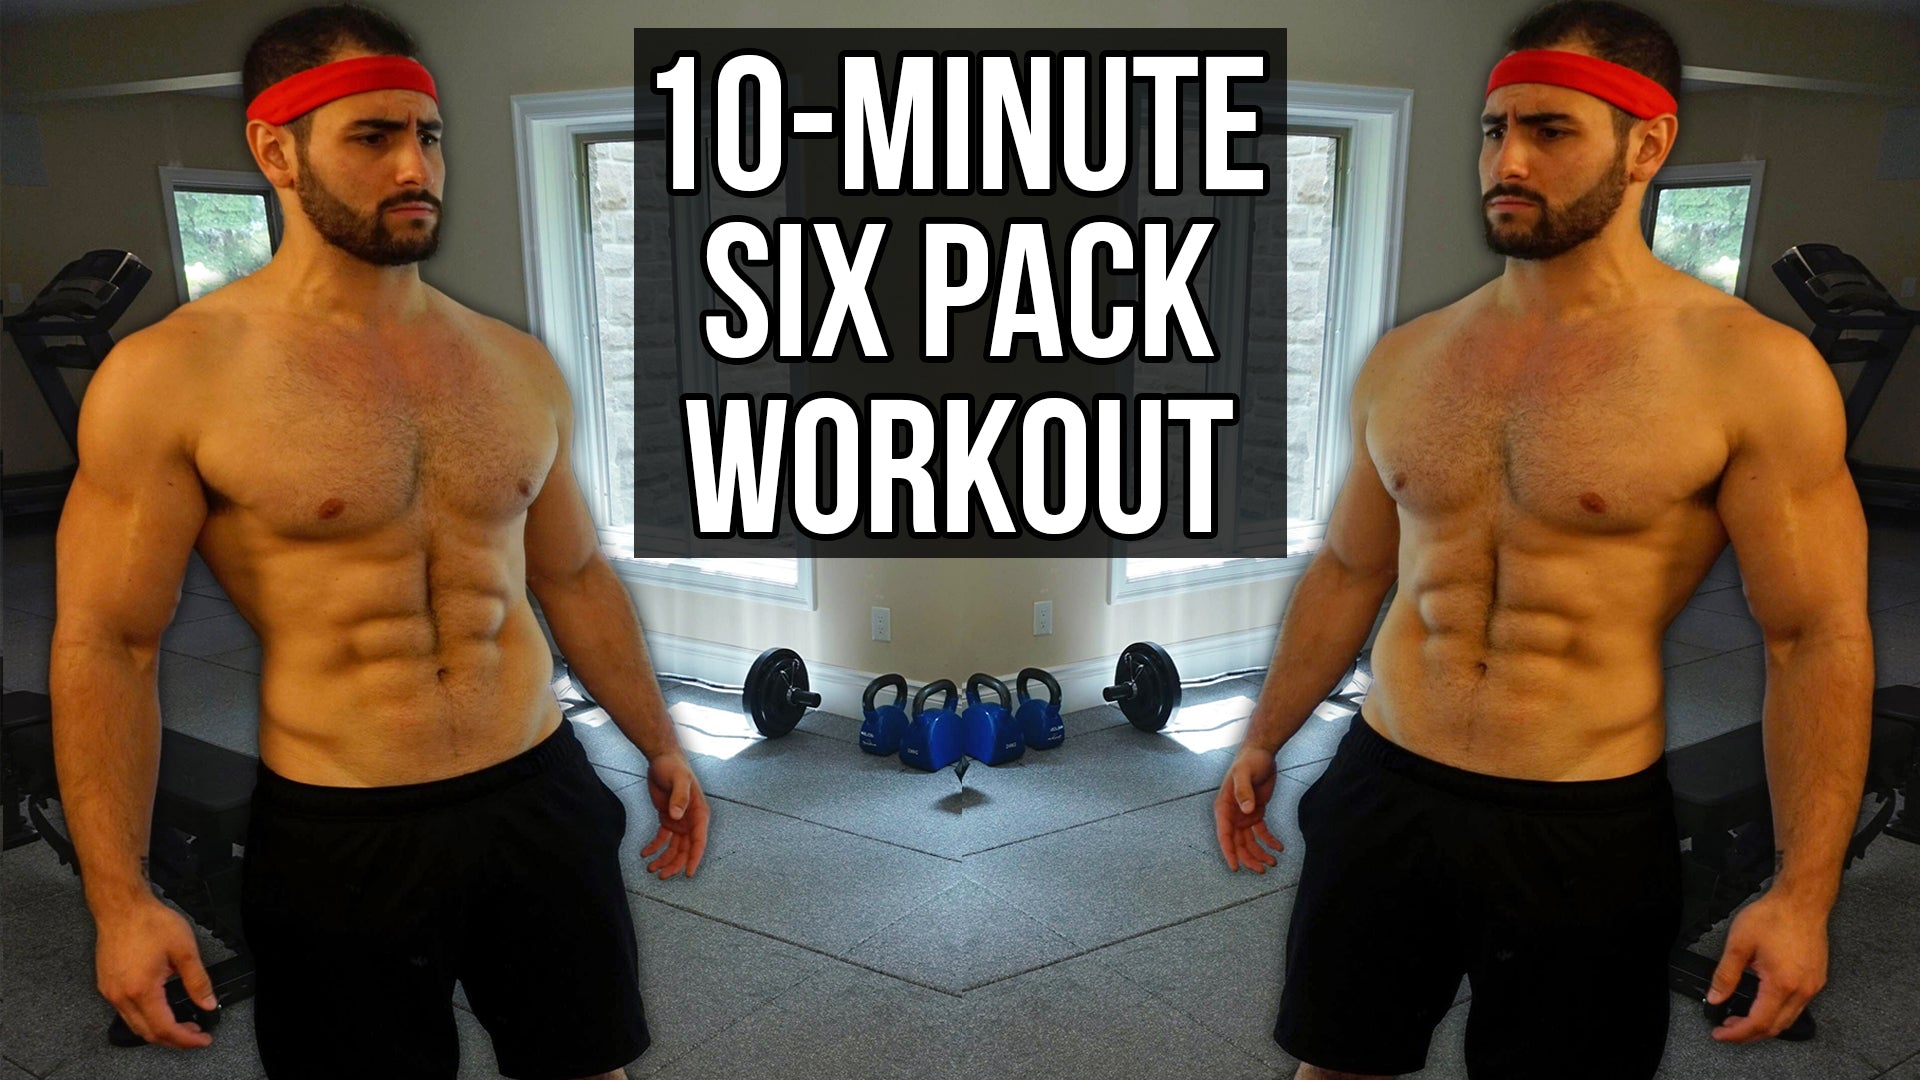 10 Minute Intense Abs Workout Routine 4 Best Six Pack Exercises